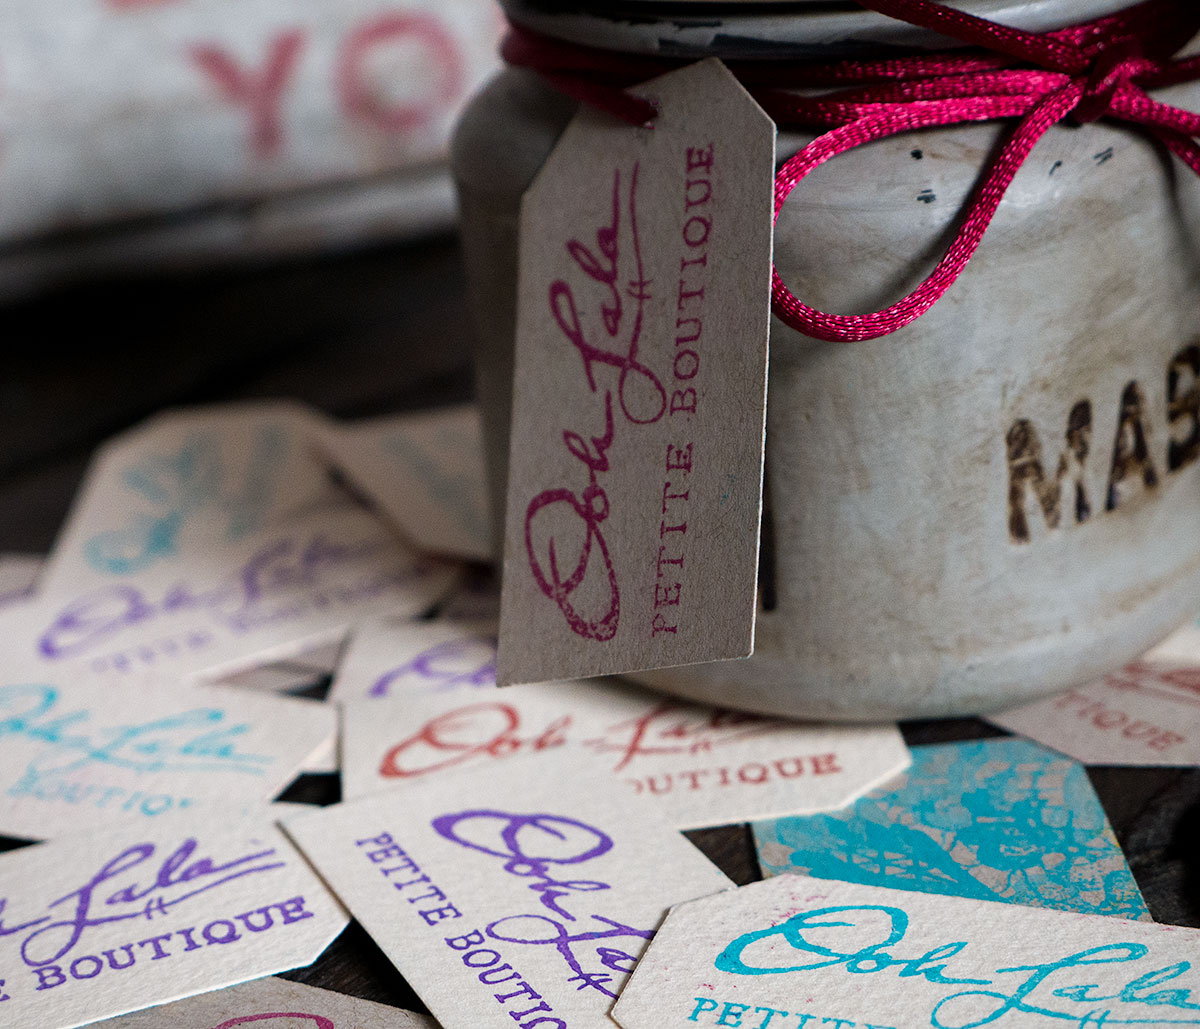 Tags for the candles